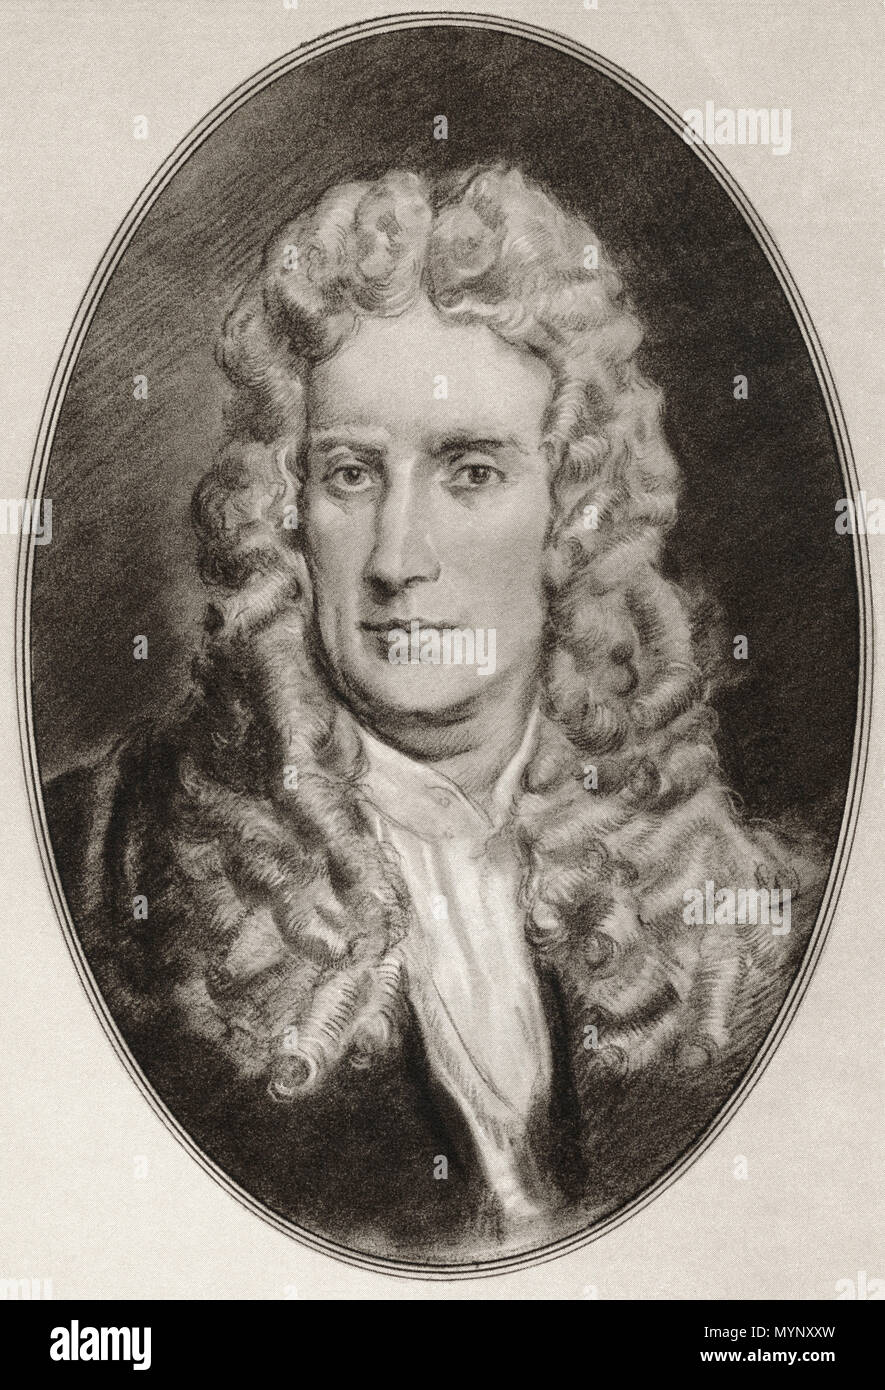 Sir Isaac Newton, 1642 – 1726/27. English mathematician, astronomer, theologian, author, physicist and natural philosopher.  Illustration by Gordon Ross, American artist and illustrator (1873-1946), from Living Biographies of Famous Men. - Stock Image